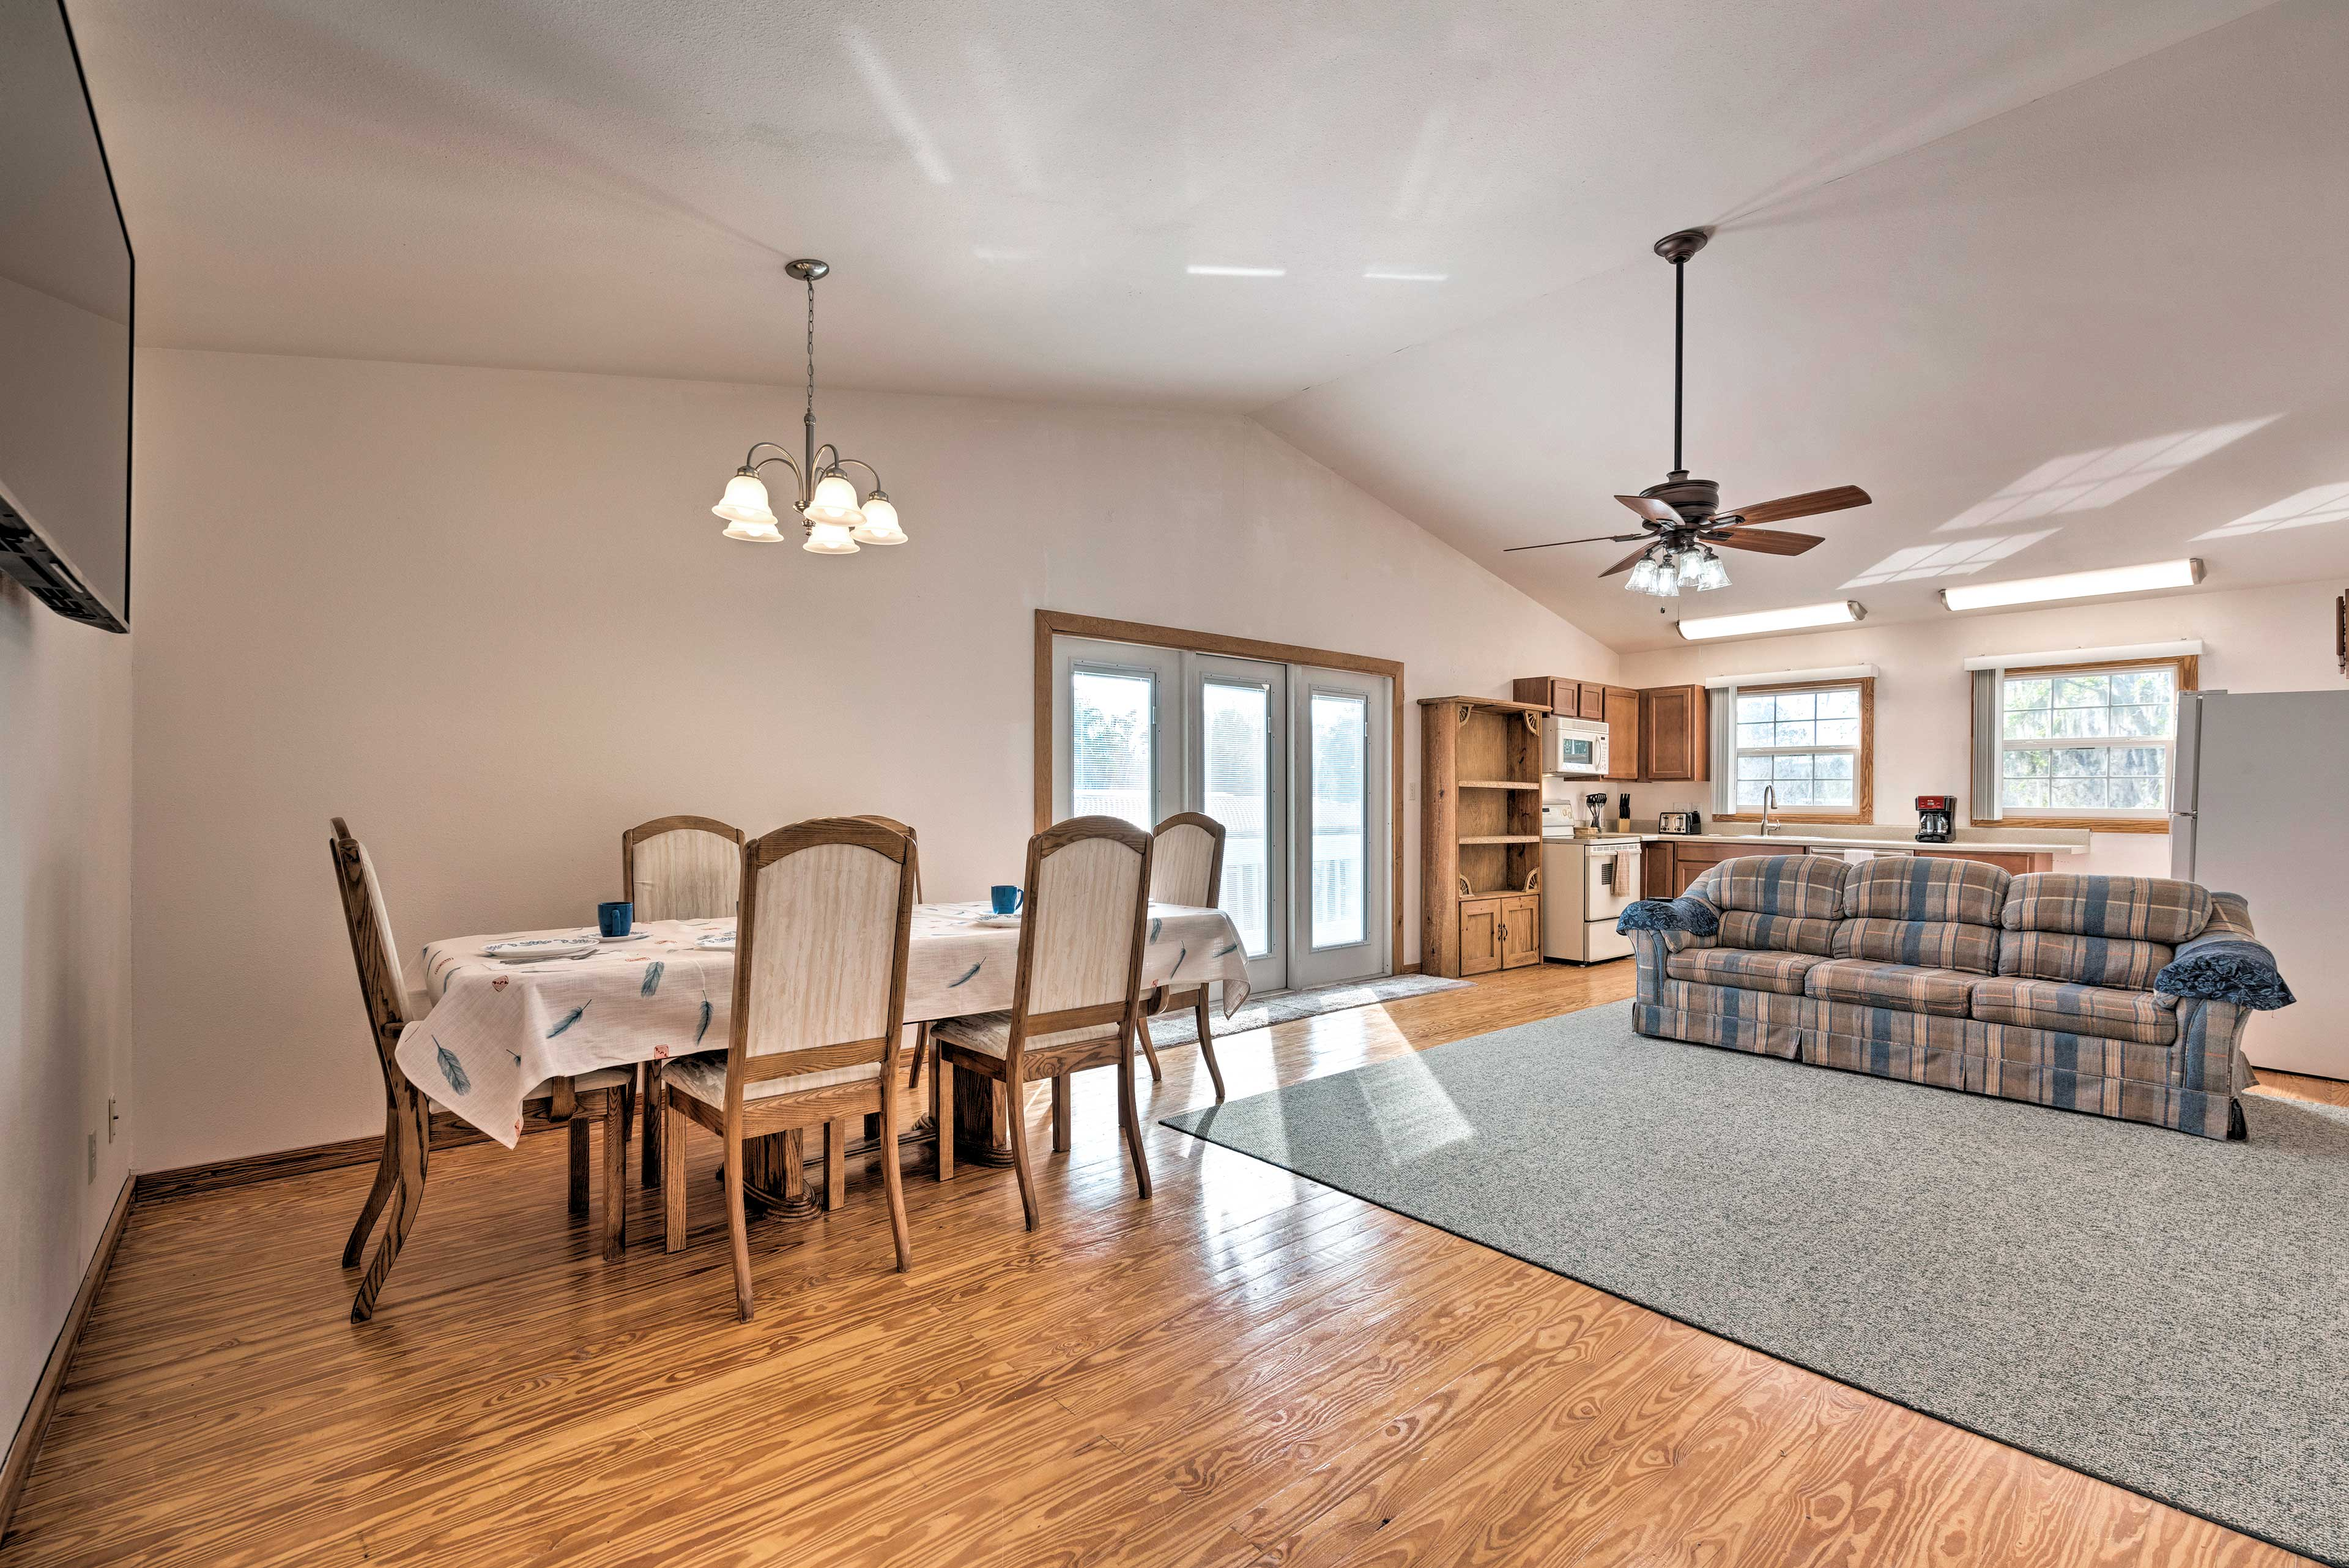 The apartment can accommodate your group of 5.